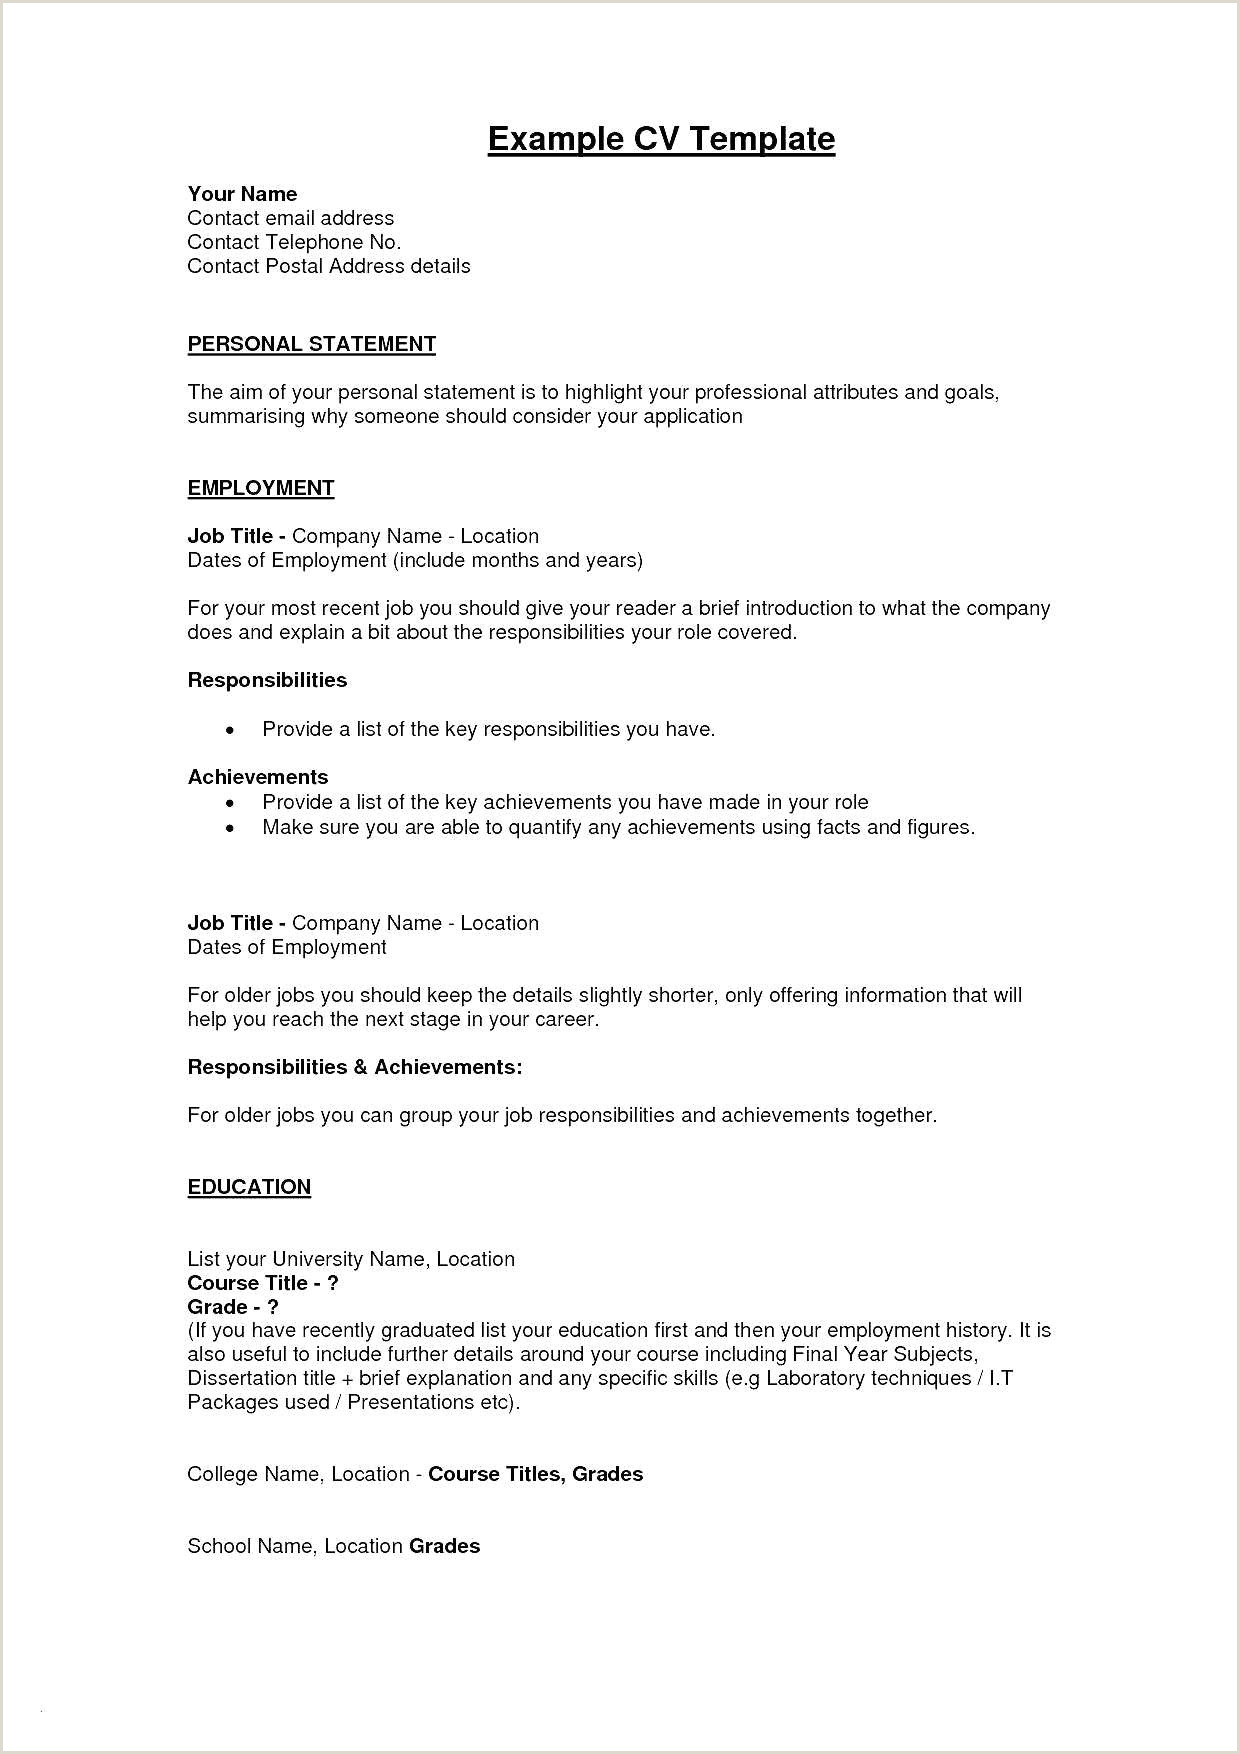 Cv format for Job with Photo Fresh Examples Resumes Ecologist Resume 0d What to Include